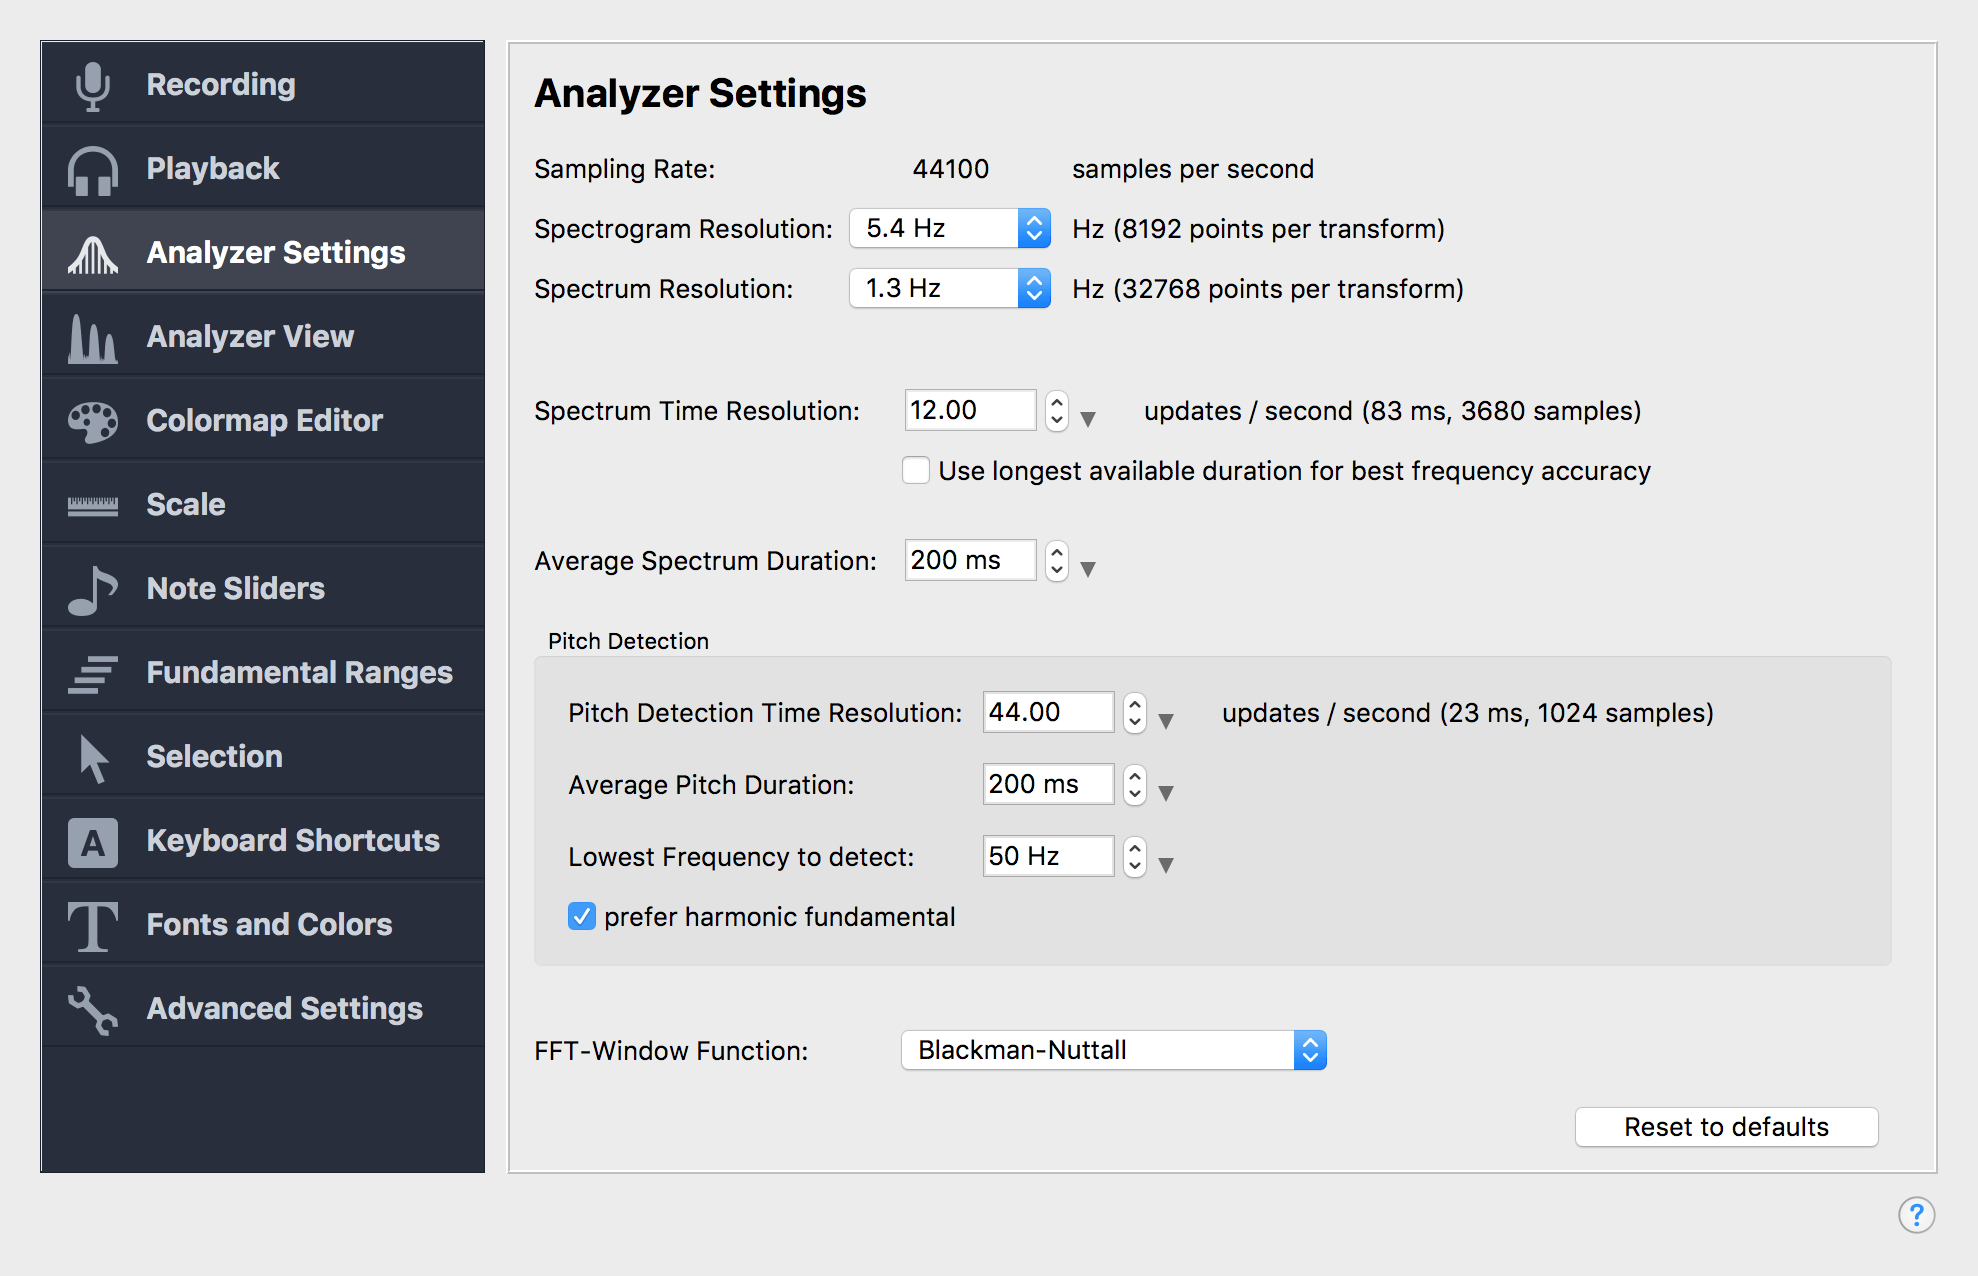 Analyzer Settings